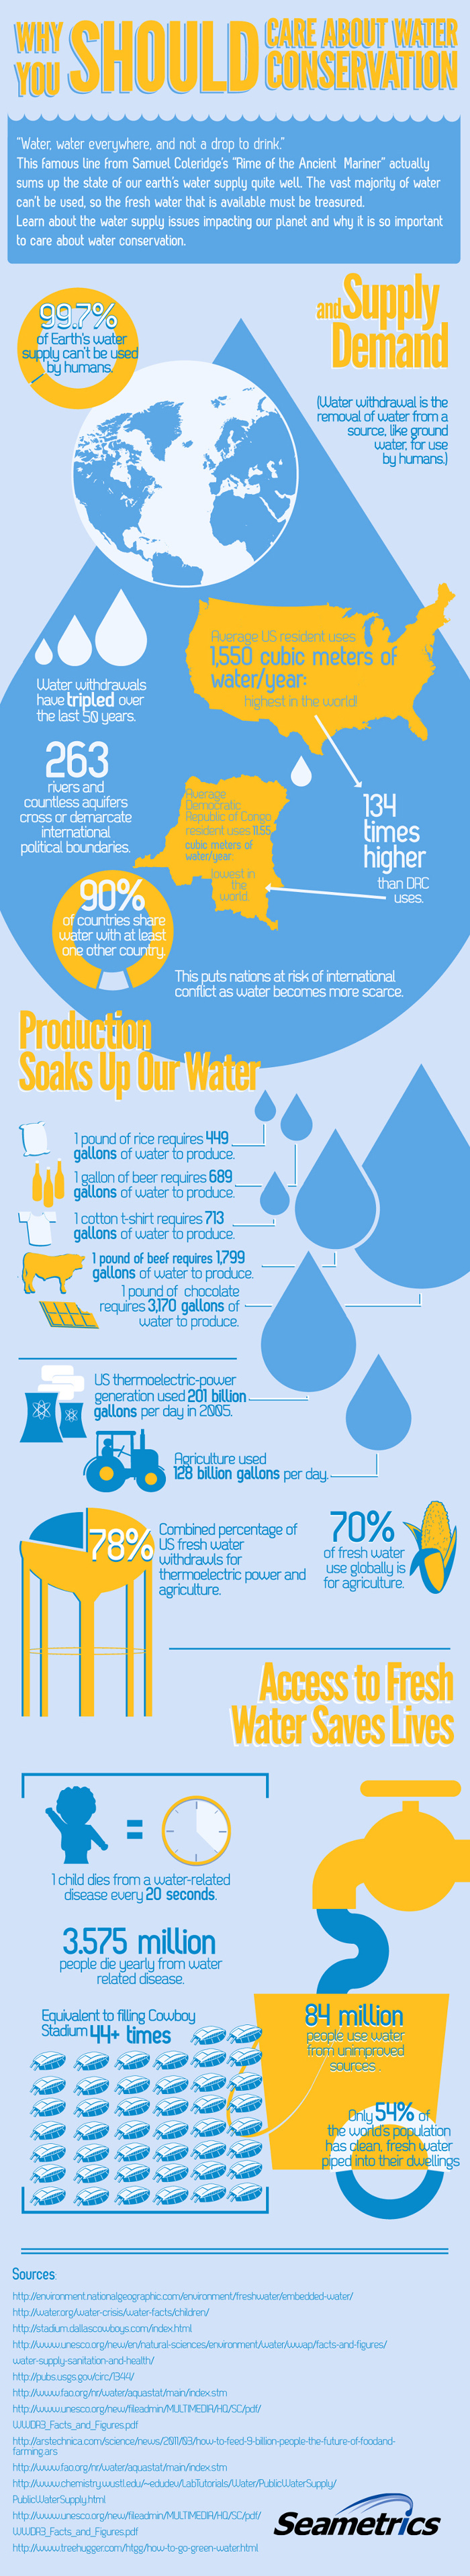 Why You Should Care About Water Conservation